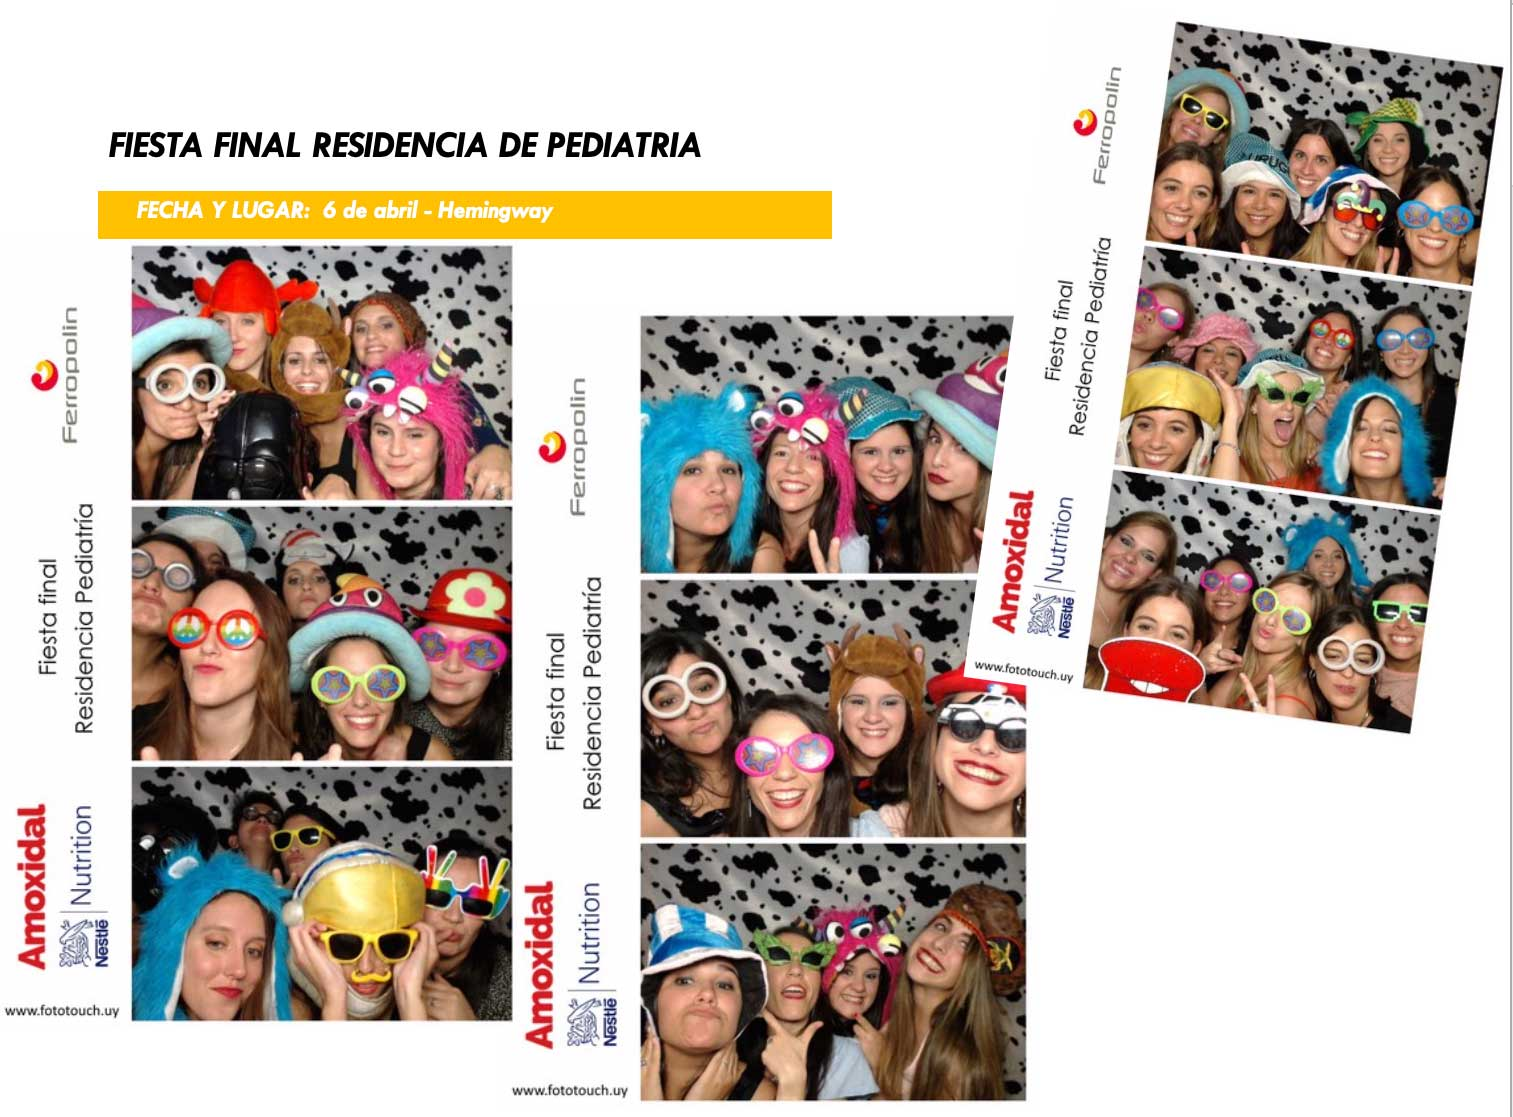 Fiesta final residencia de pediatría